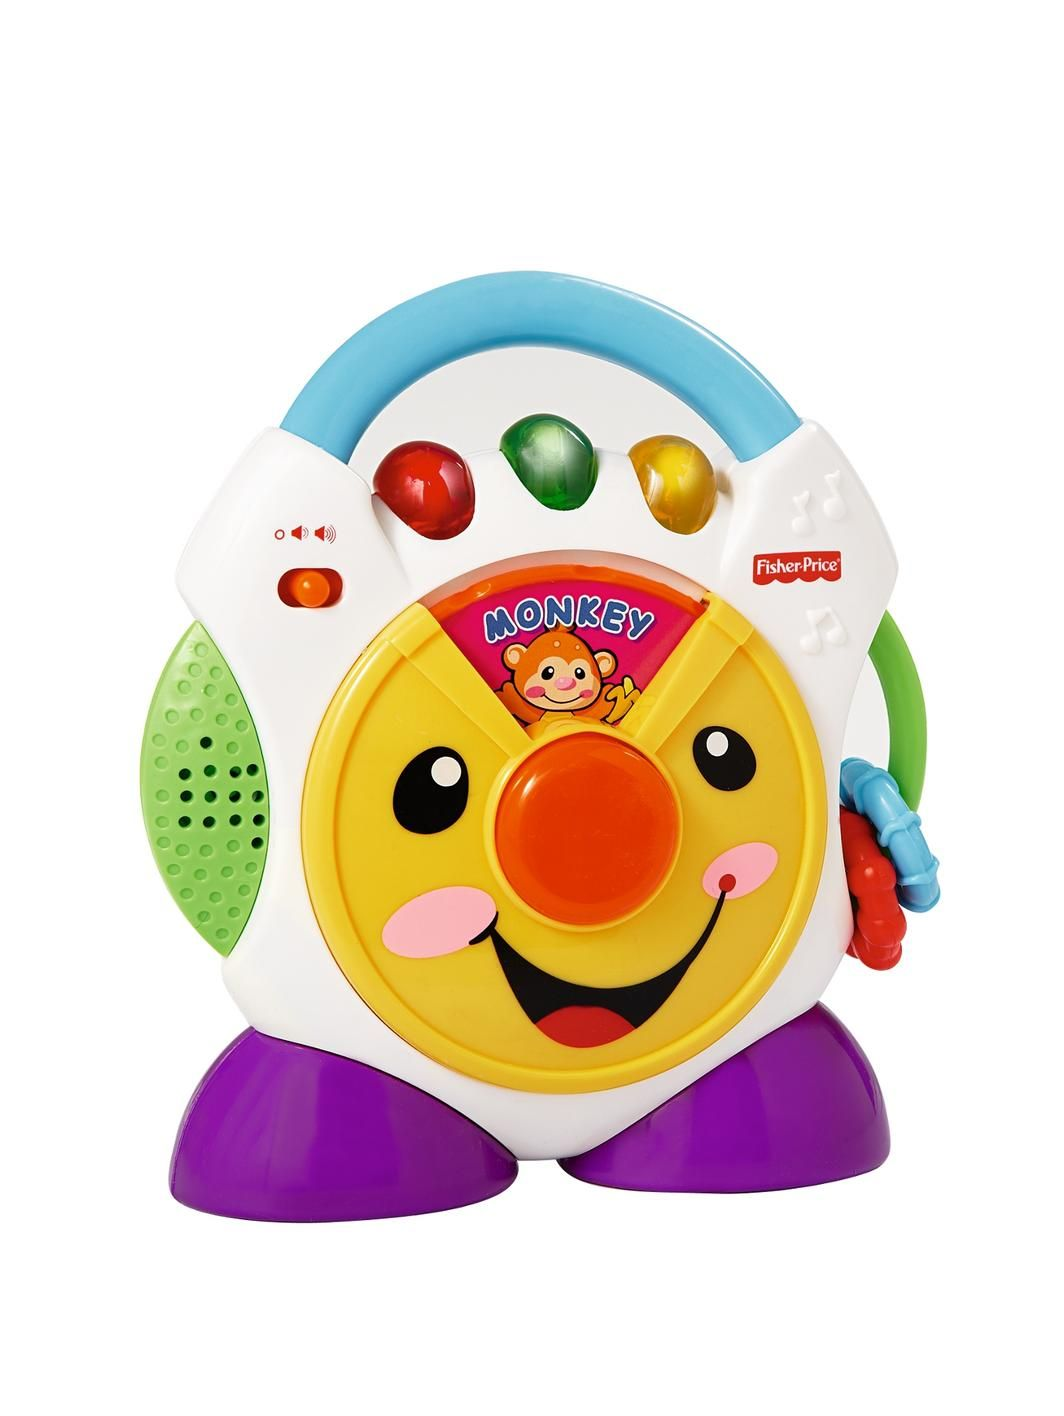 This Portable Laugh And Learn Nursery Rhyme Cd Player Teaches Your Child Fun Rhymes Animals Names Noises So They Can While Play